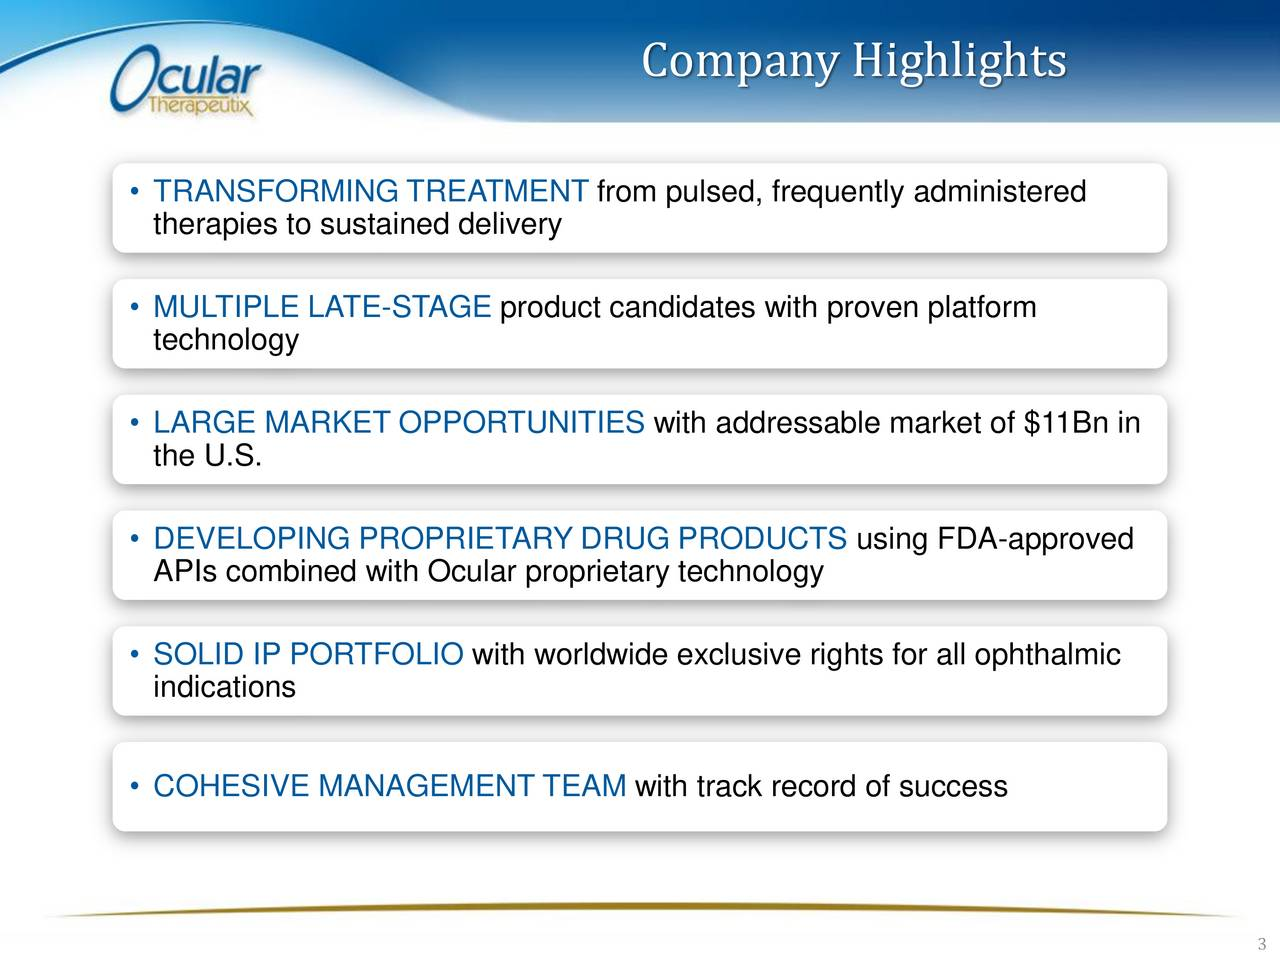 TRANSFORMING TREATMENT from pulsed, frequently administered therapies to sustained delivery MULTIPLE LATE-STAGE product candidates with proven platform technology LARGE MARKET OPPORTUNITIES with addressable market of $11Bn in the U.S. DEVELOPING PROPRIETARY DRUG PRODUCTS using FDA-approved APIs combined with Ocular proprietary technology SOLID IP PORTFOLIO with worldwide exclusive rights for all ophthalmic indications COHESIVE MANAGEMENT TEAM with track record of success